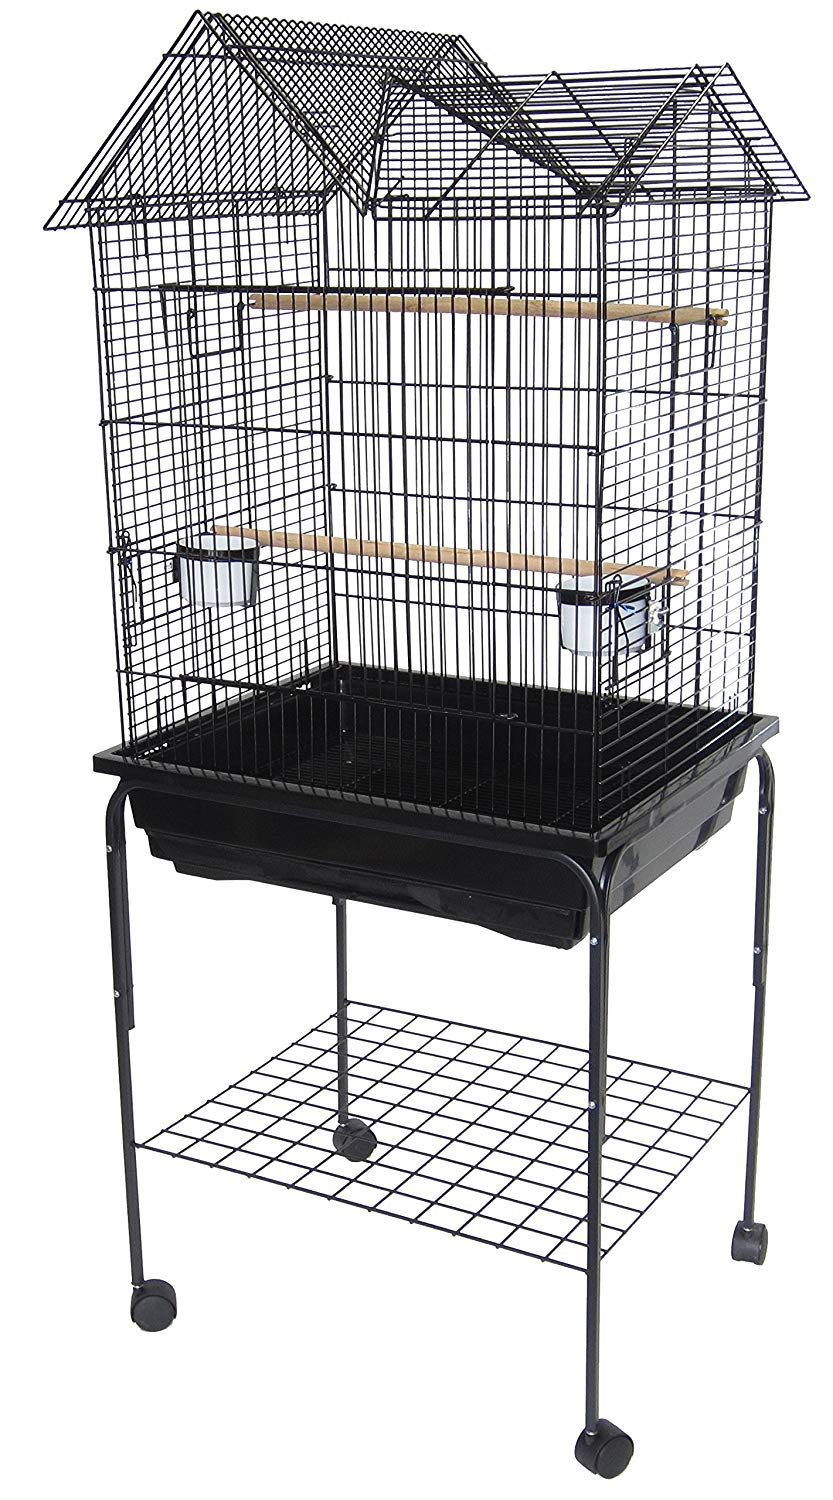 YML Villa Top Parrot Cage from YML Group